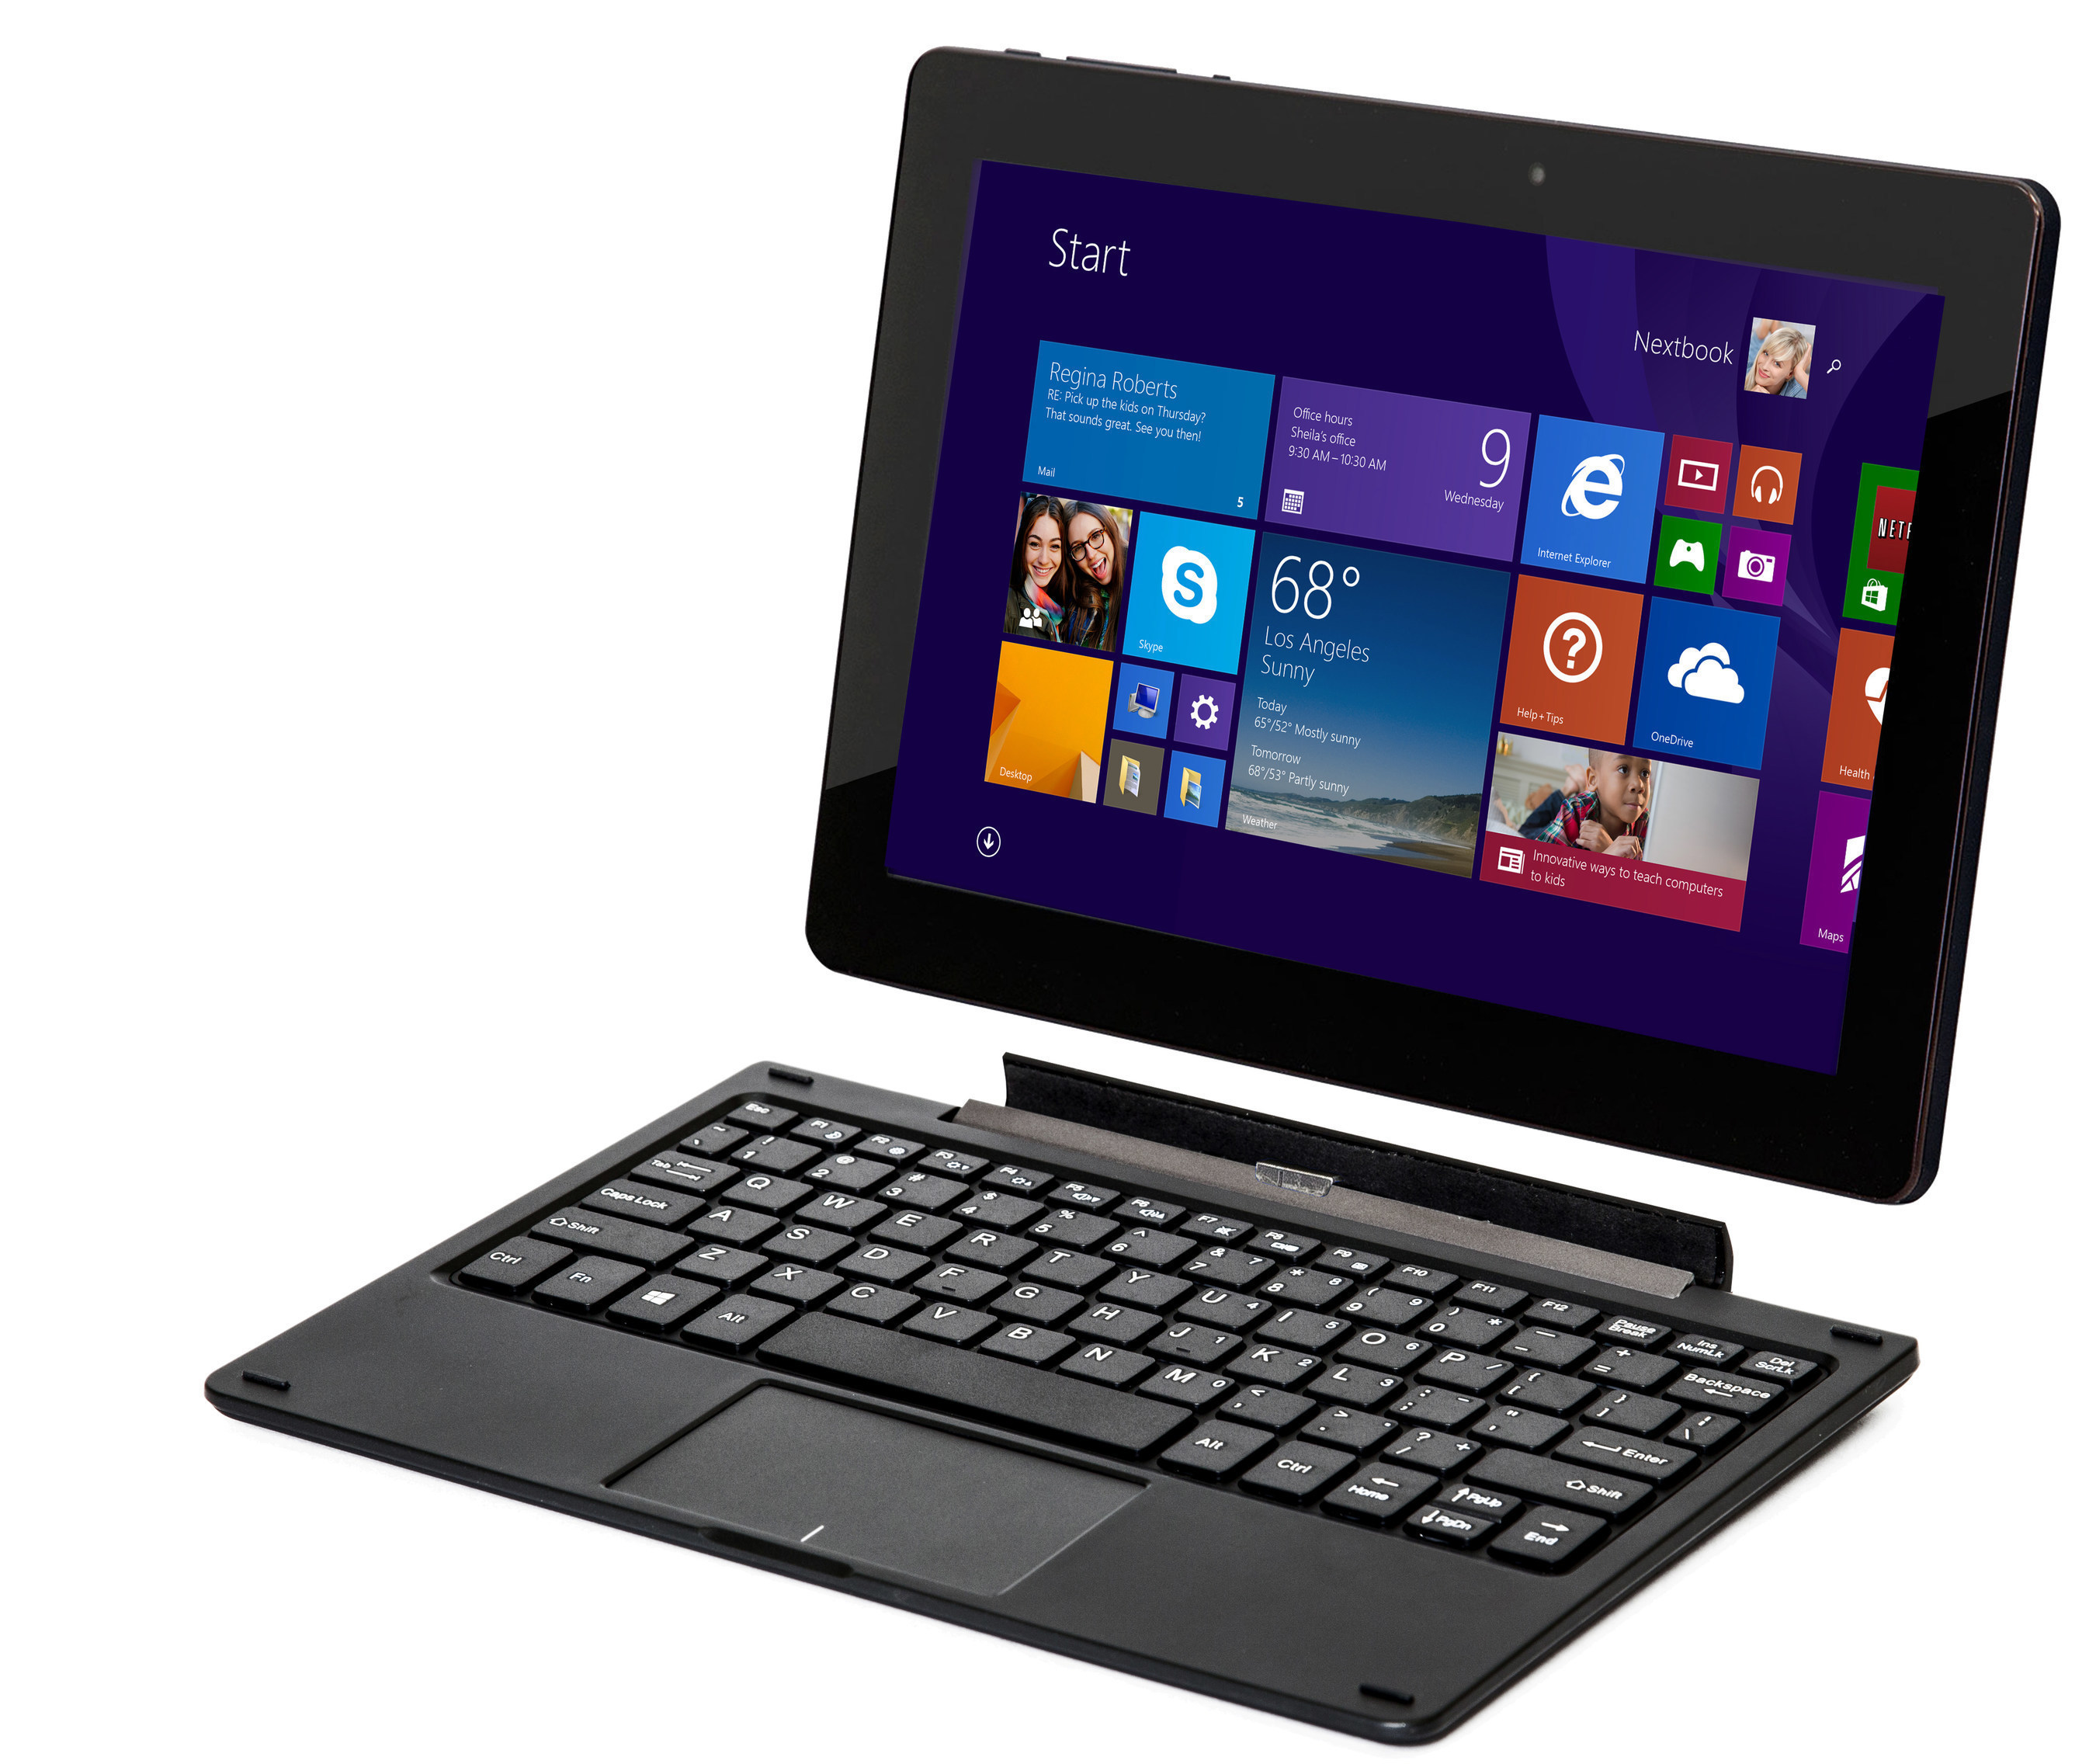 The Nextbook 10 Windows 2-in-1 tablet with detachable keyboard is available now for $219.99.